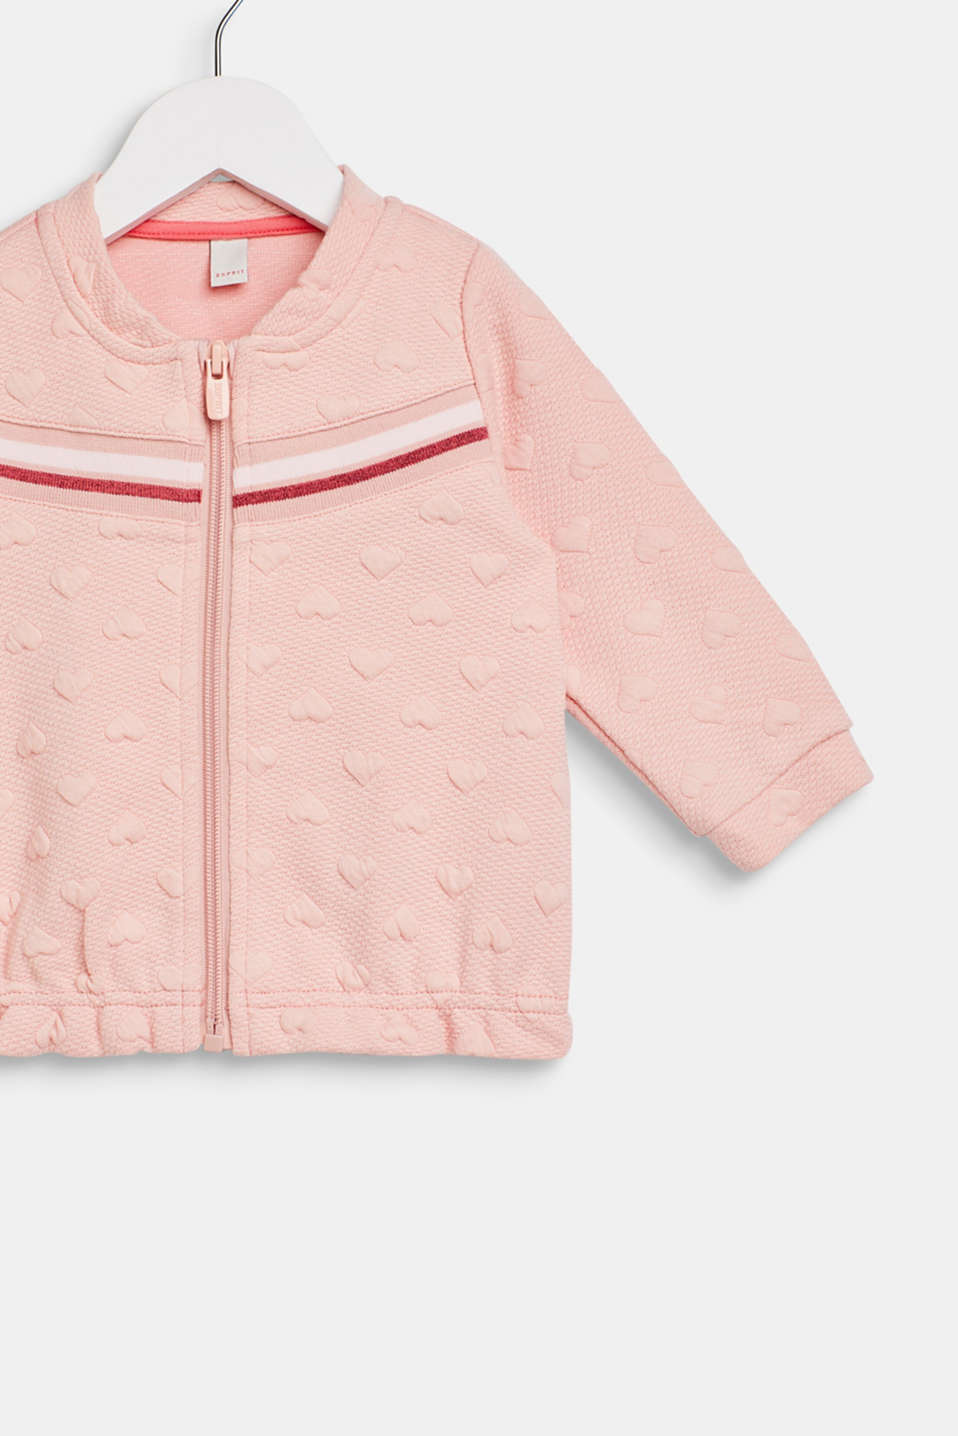 Sweatshirt fabric cardigan with a heart-shaped texture, LCLIGHT BLUSH, detail image number 2